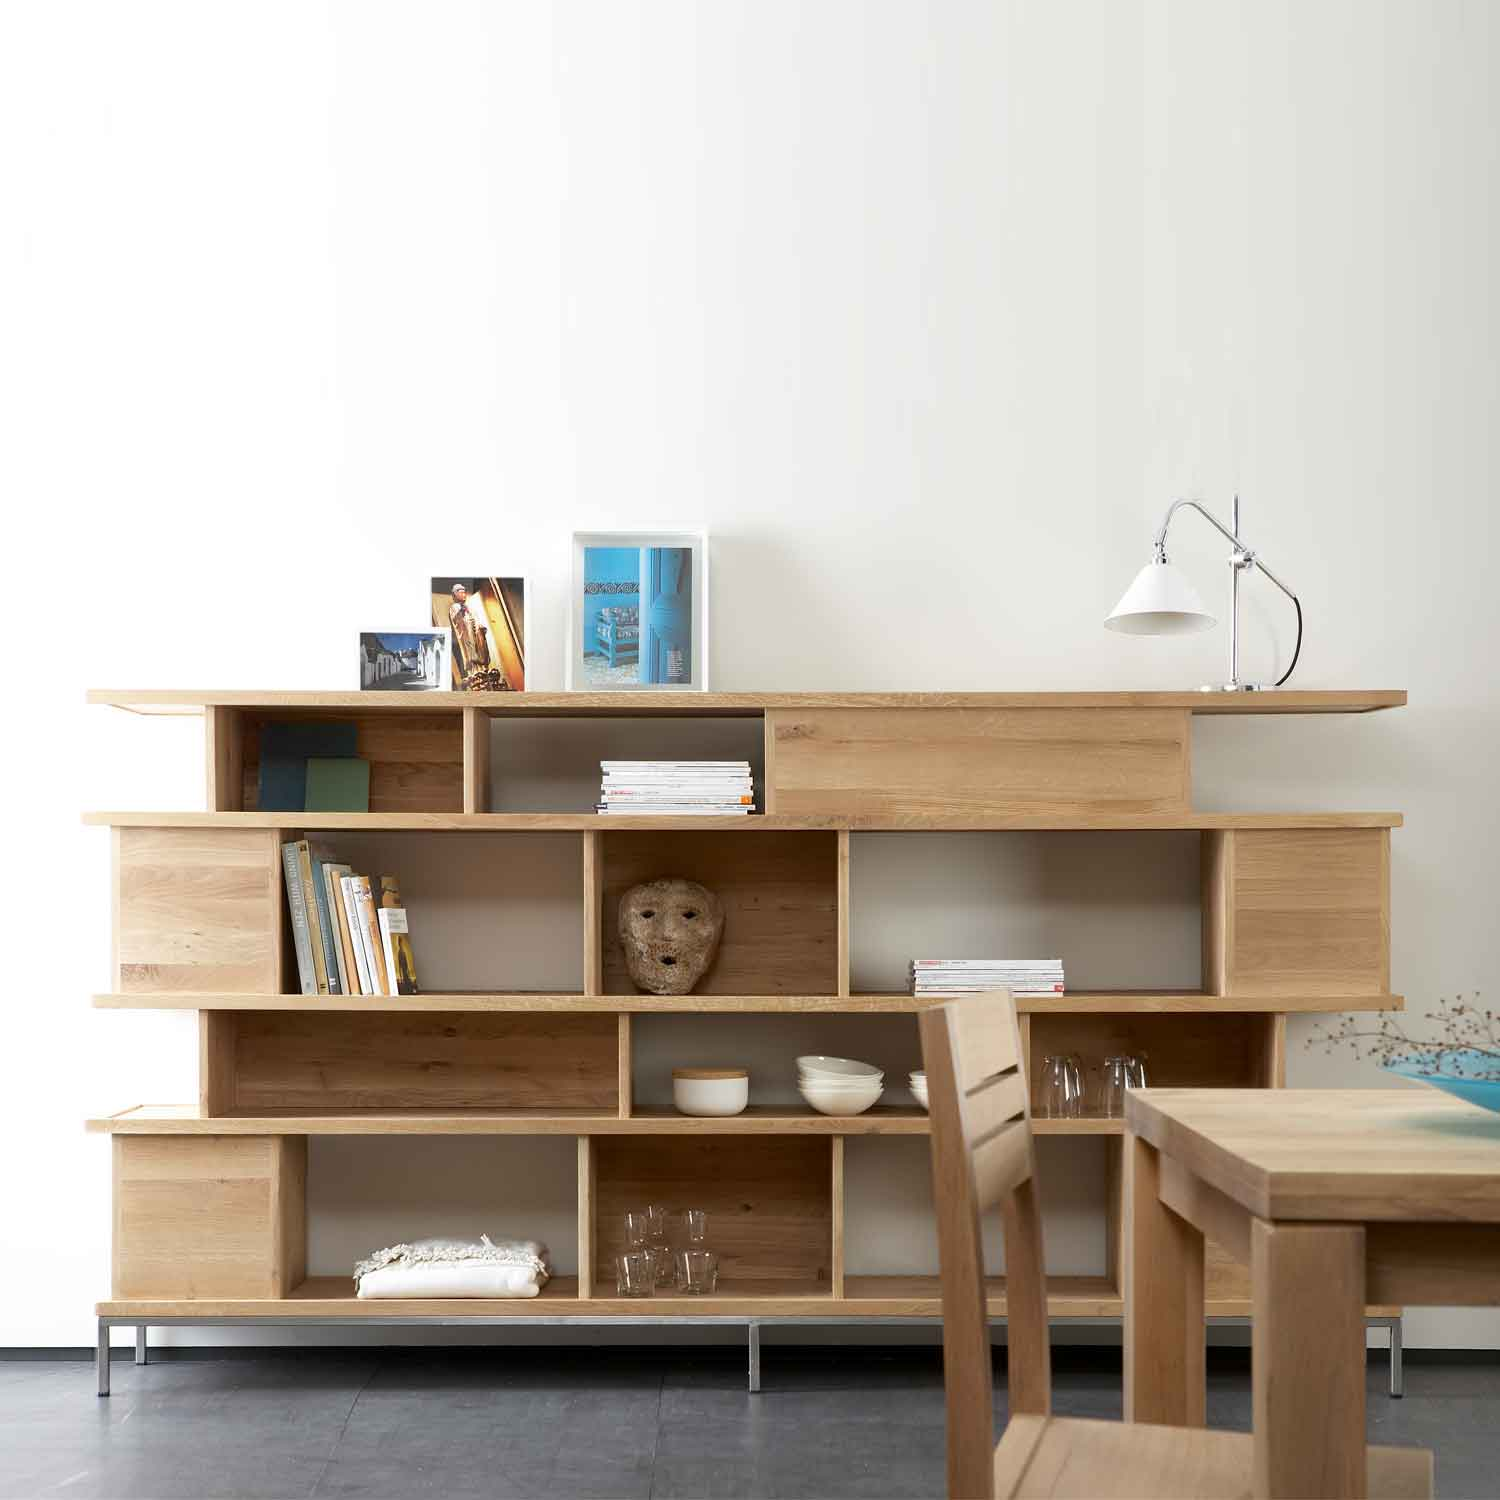 Ethnicraft Oak Ligna bookcases / room dividers